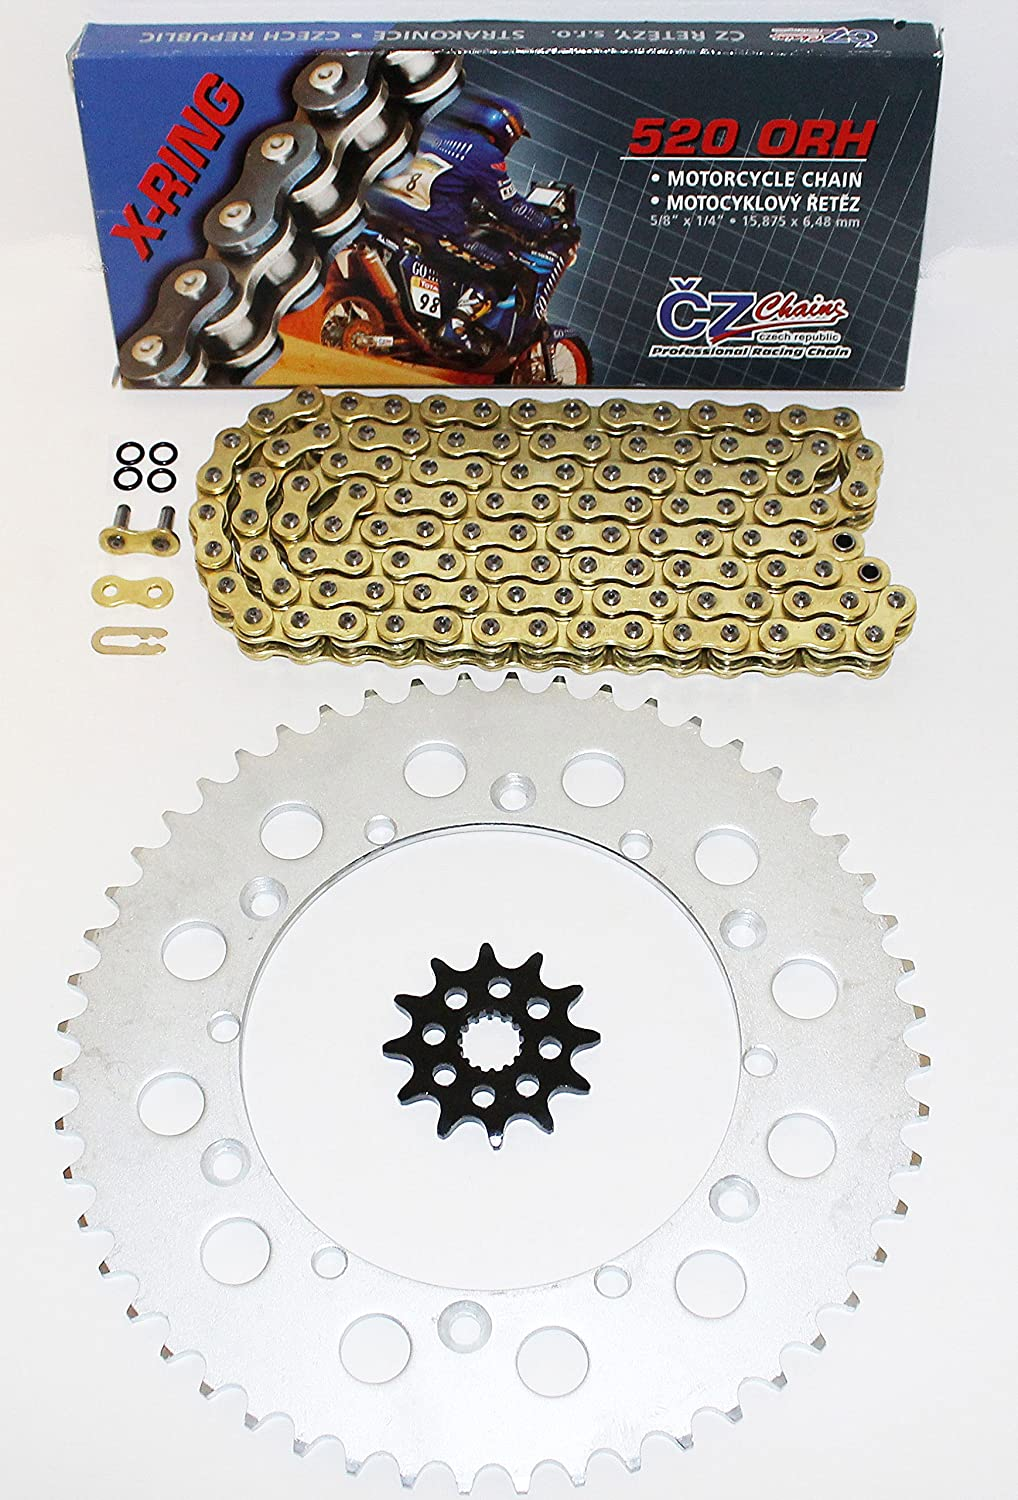 CZ ORHG Gold X Ring Chain and Sprocket 12/52 120L 1988-1998 fits Yamaha YZ125 125